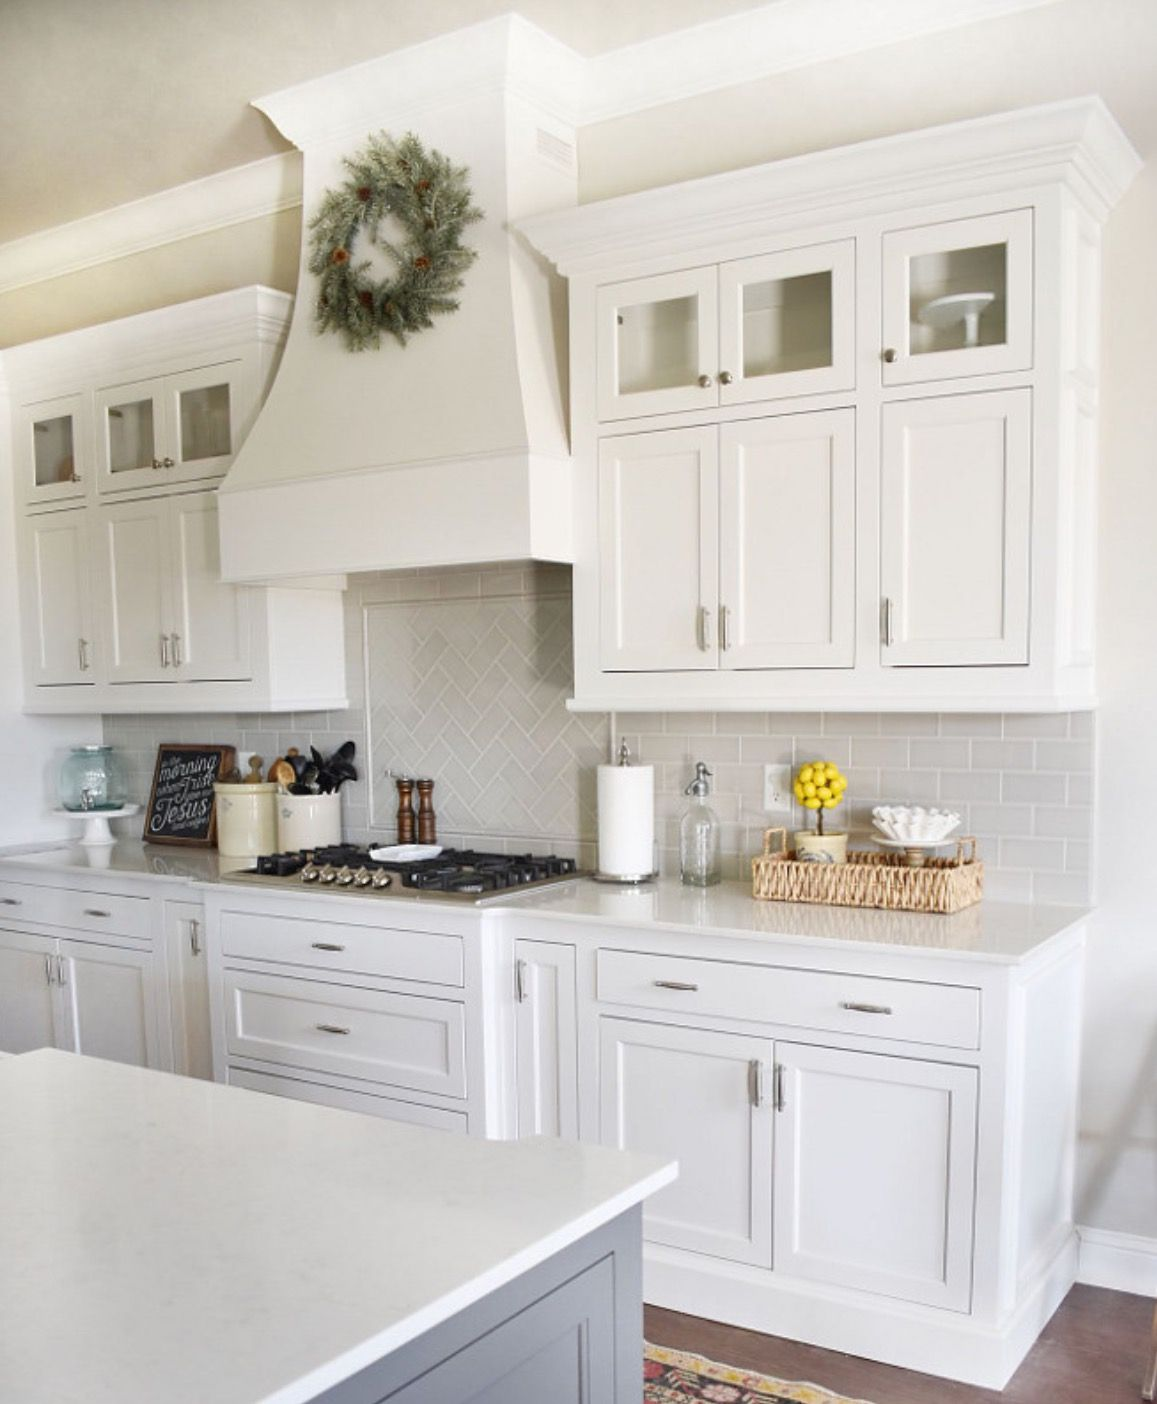 White Kitchen With Glass Inserts In Upper Cabinets